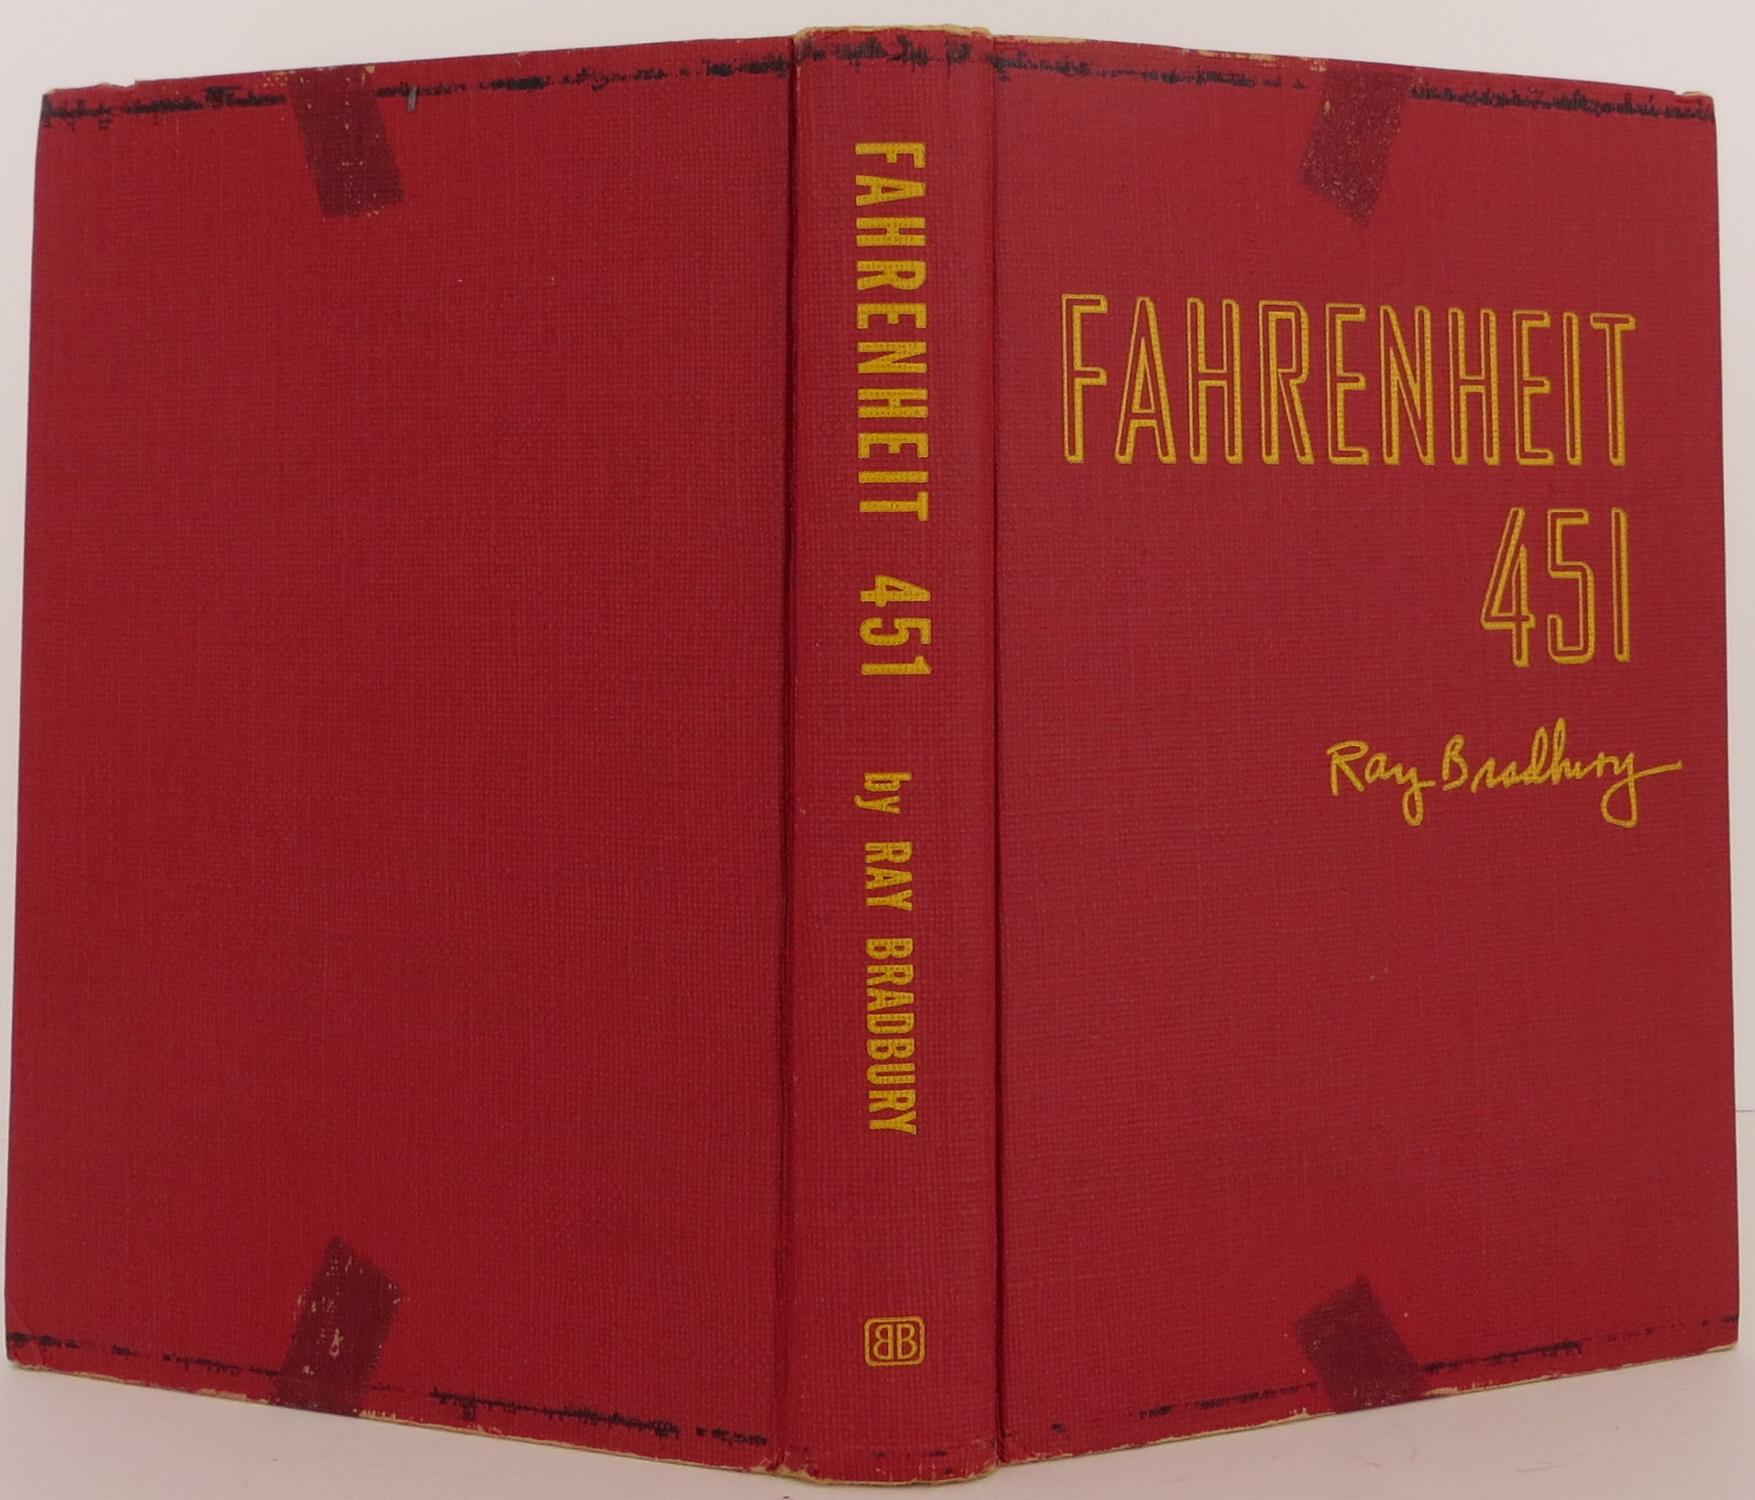 Ray Bradbury / Fahrenheit 451 First Edition 1953 #1907120